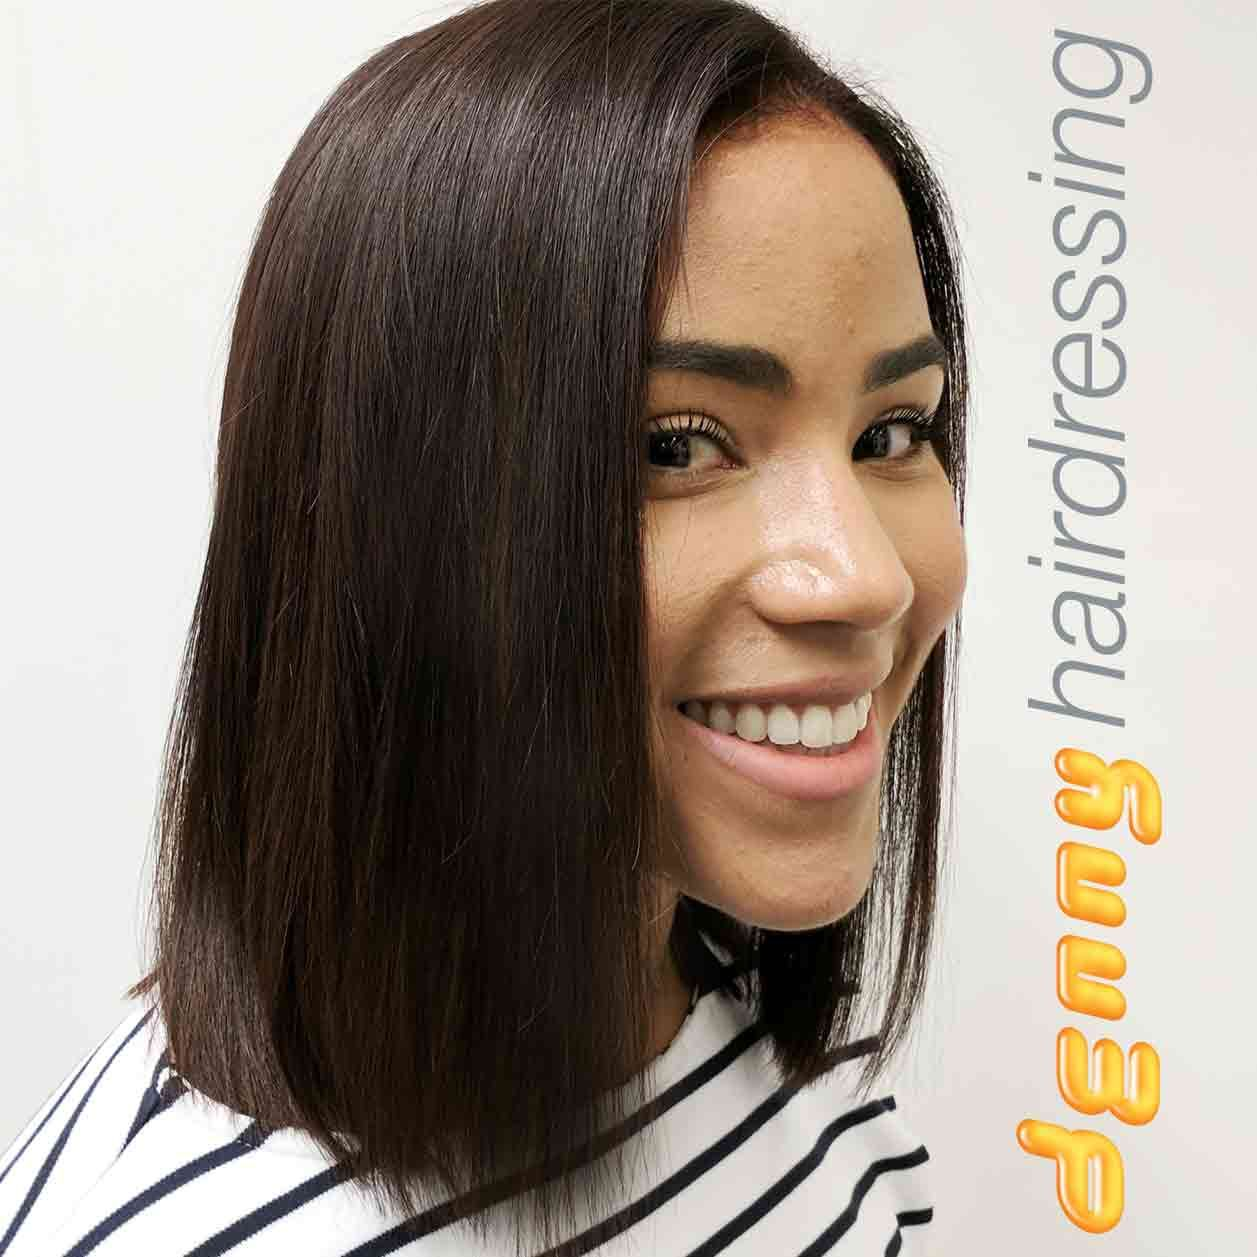 Denny Hairdressing Brazilian Keratin Blow Dry Groupon Offer Is Still